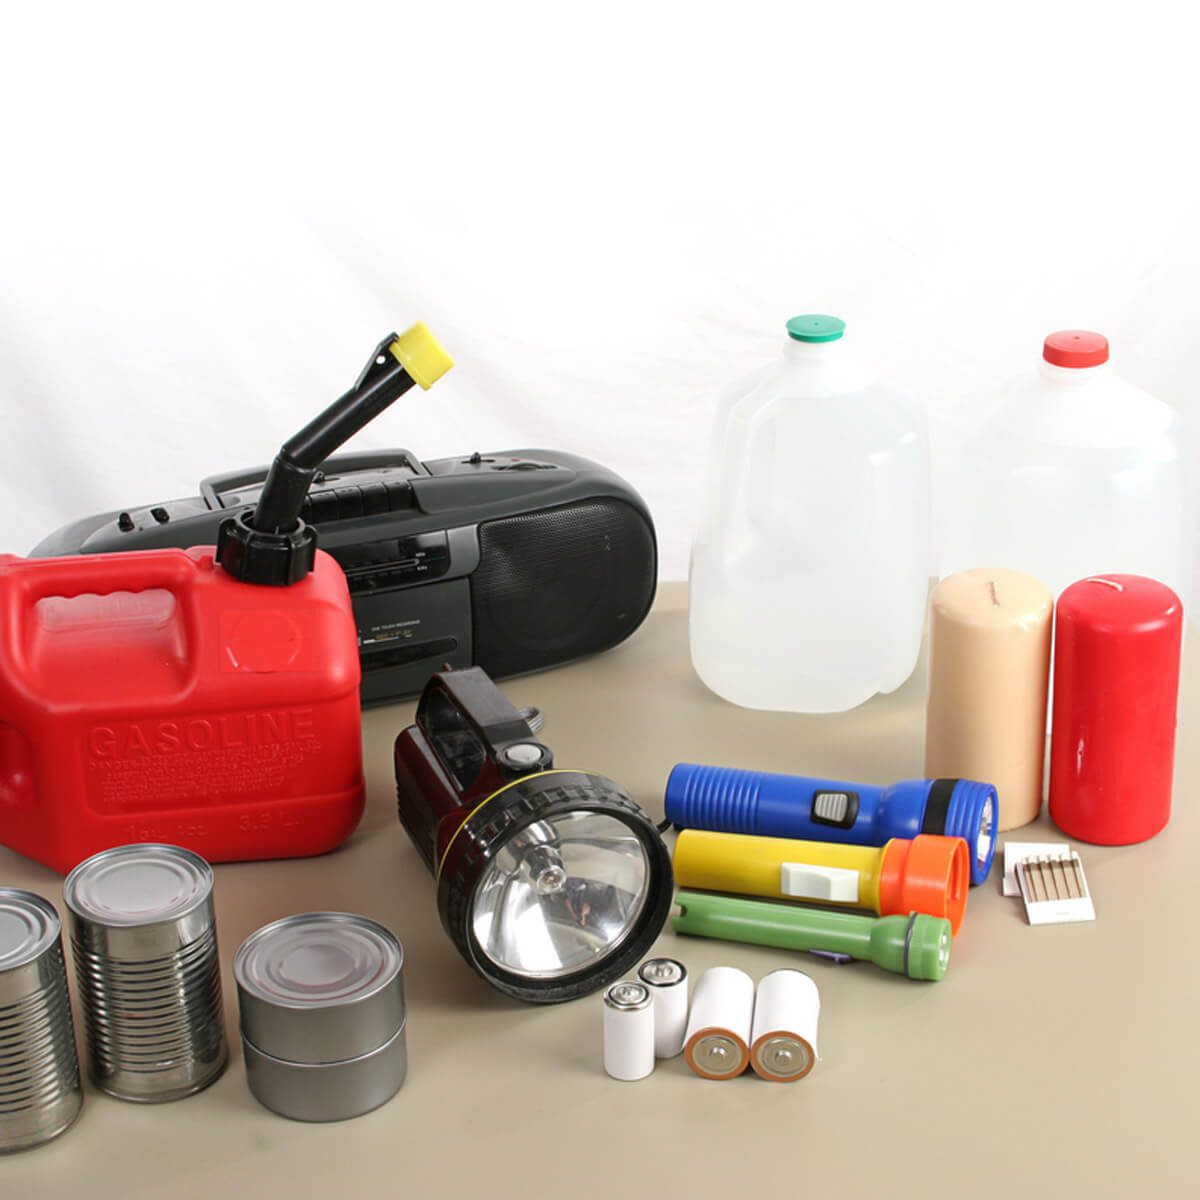 Make a Winter Storm Supplies Checklist and Stock Up